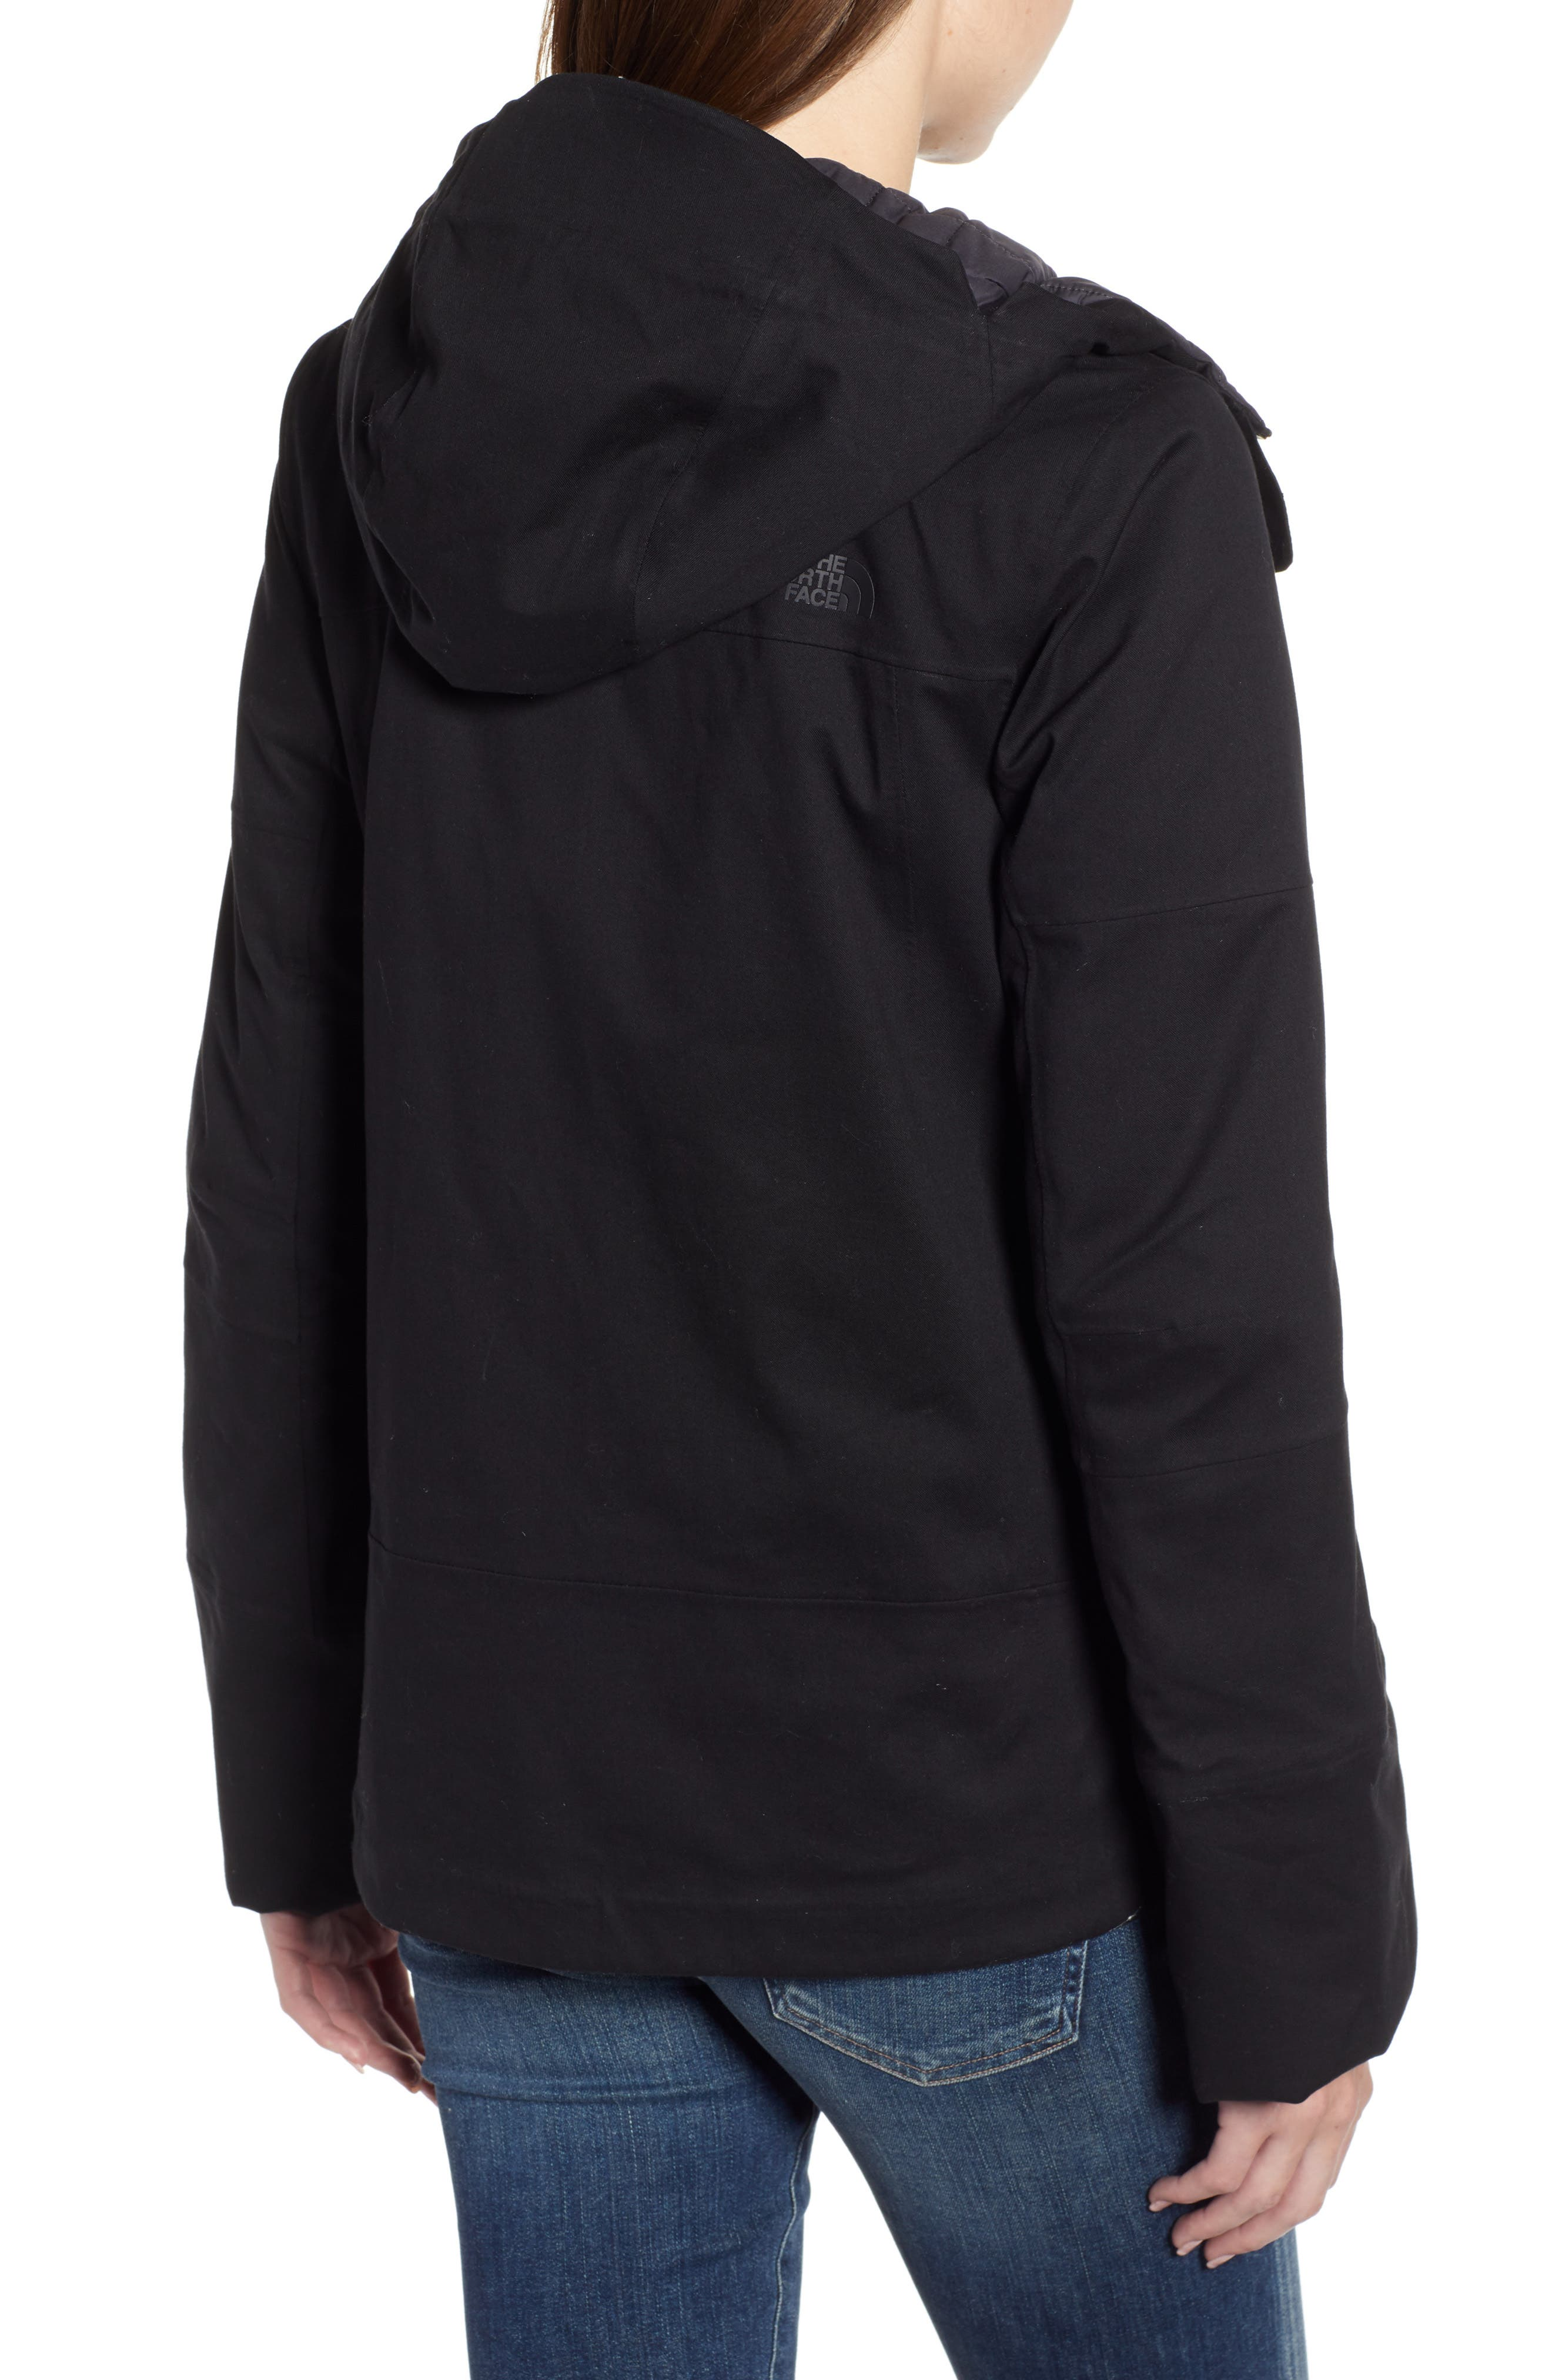 THE NORTH FACE,                             Cryos 2L Mountain Gore-Tex<sup>®</sup> Down Jacket,                             Alternate thumbnail 2, color,                             TNF BLACK